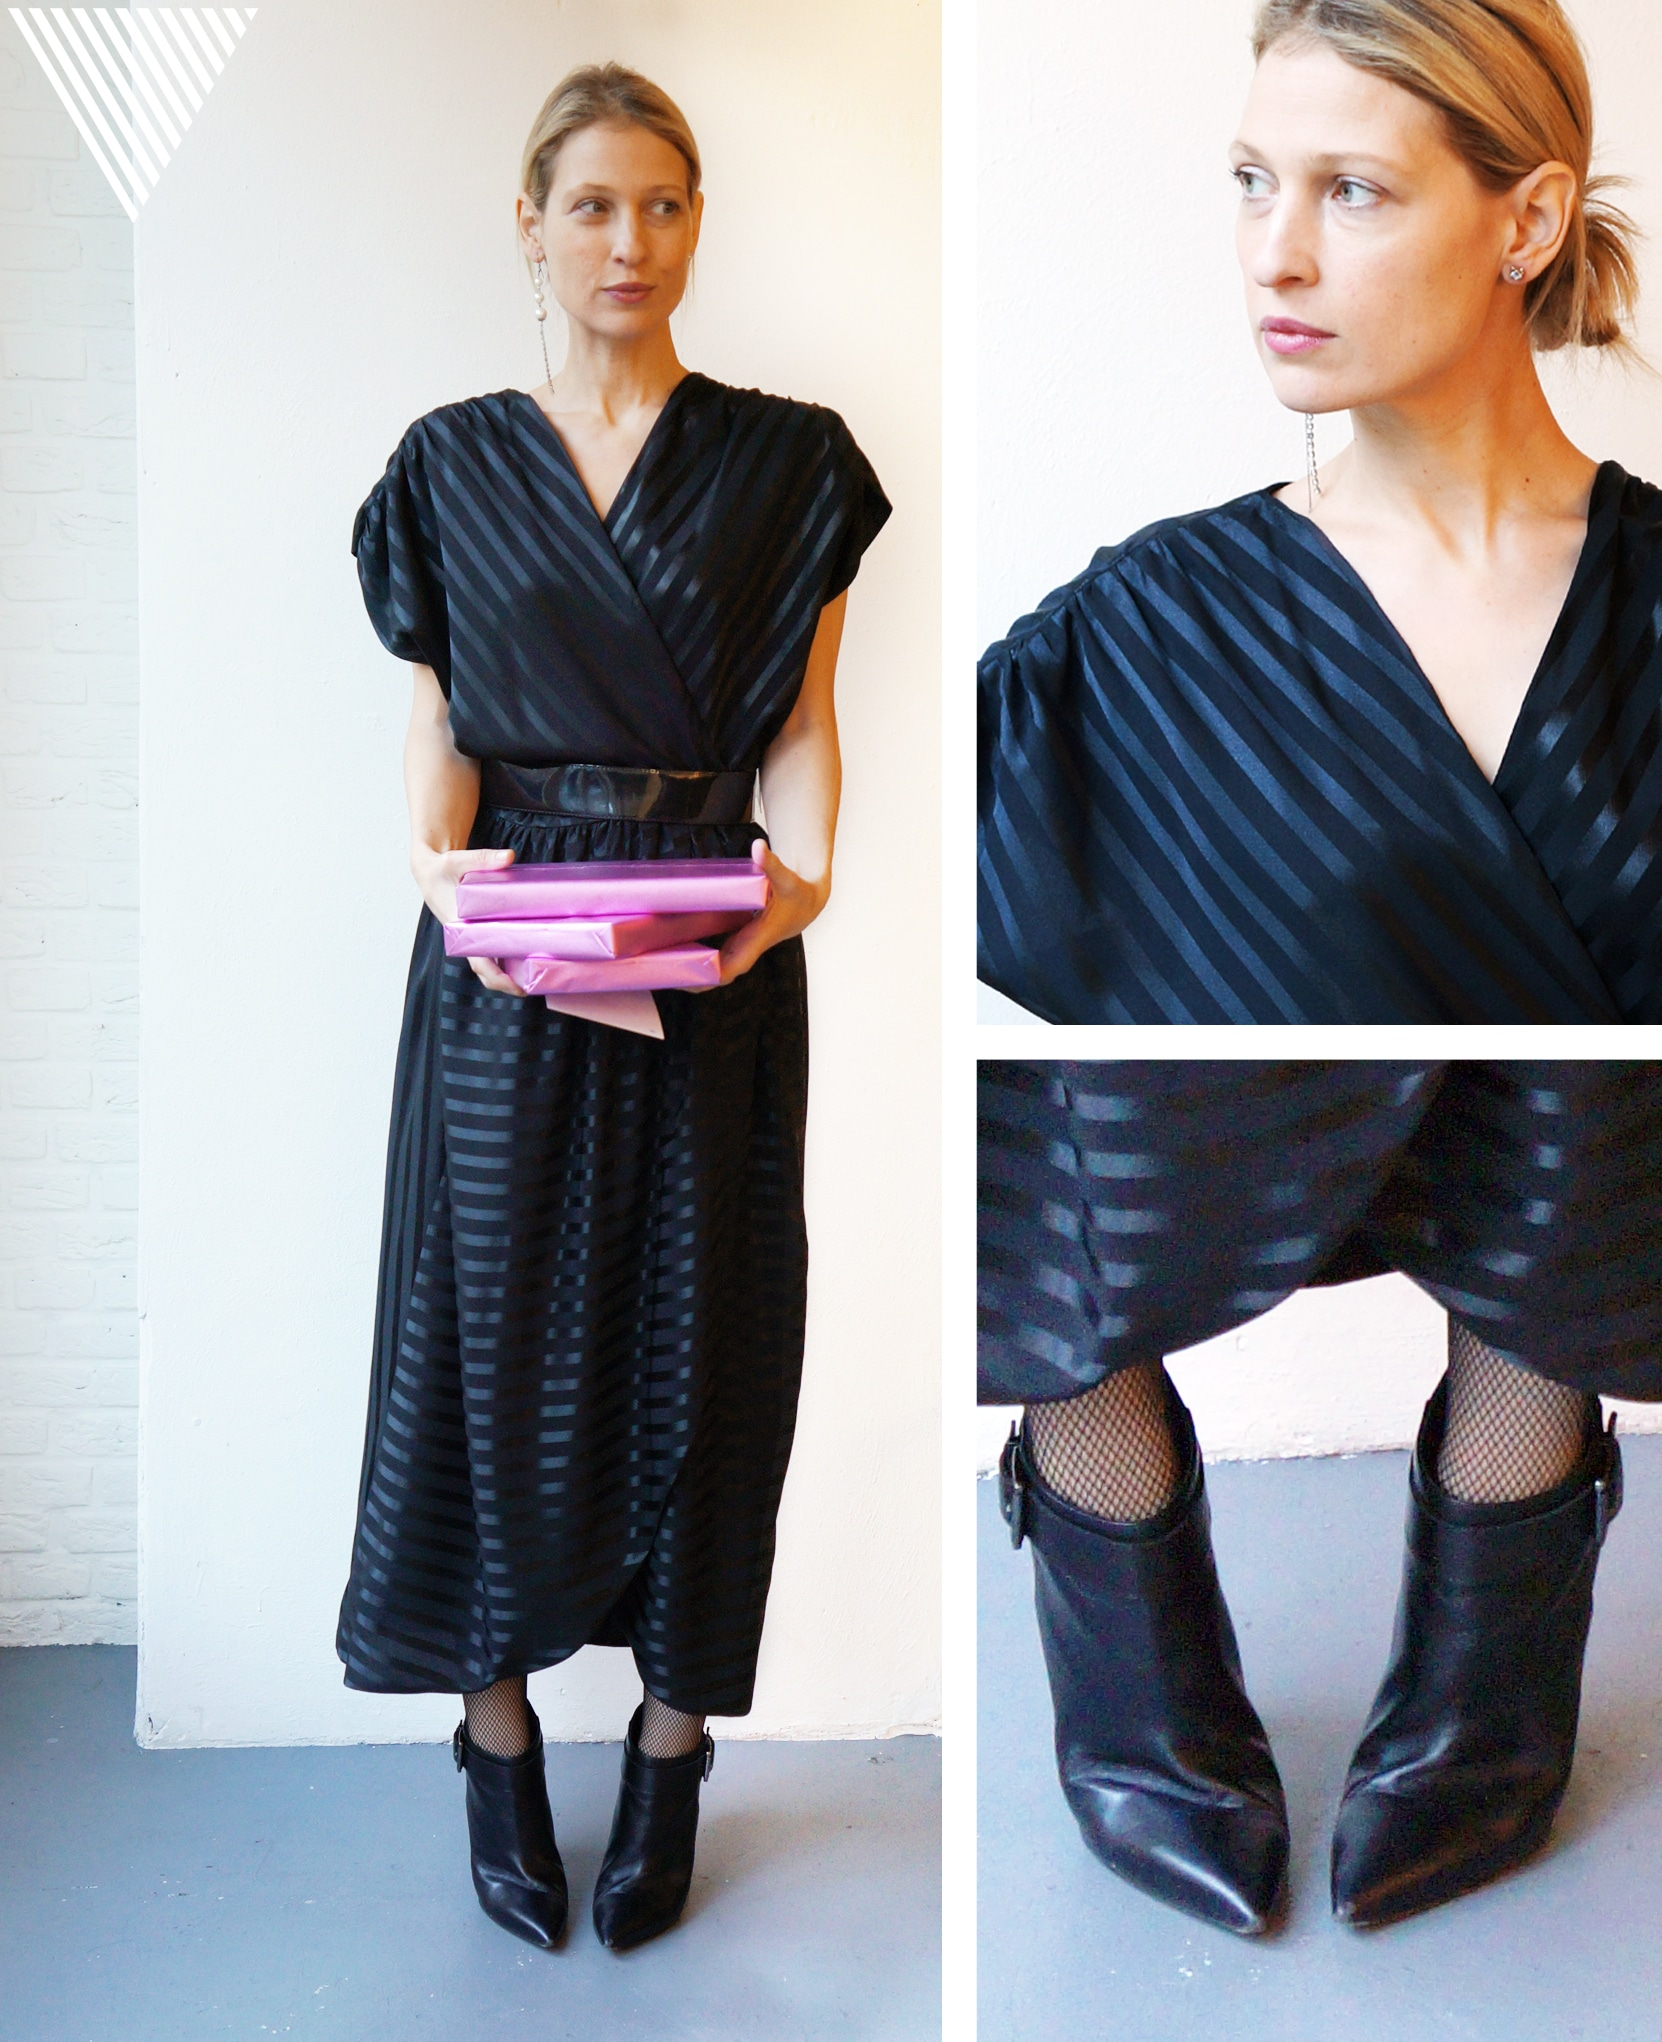 Sustainable party outfit 6: Restaurant and then a club after